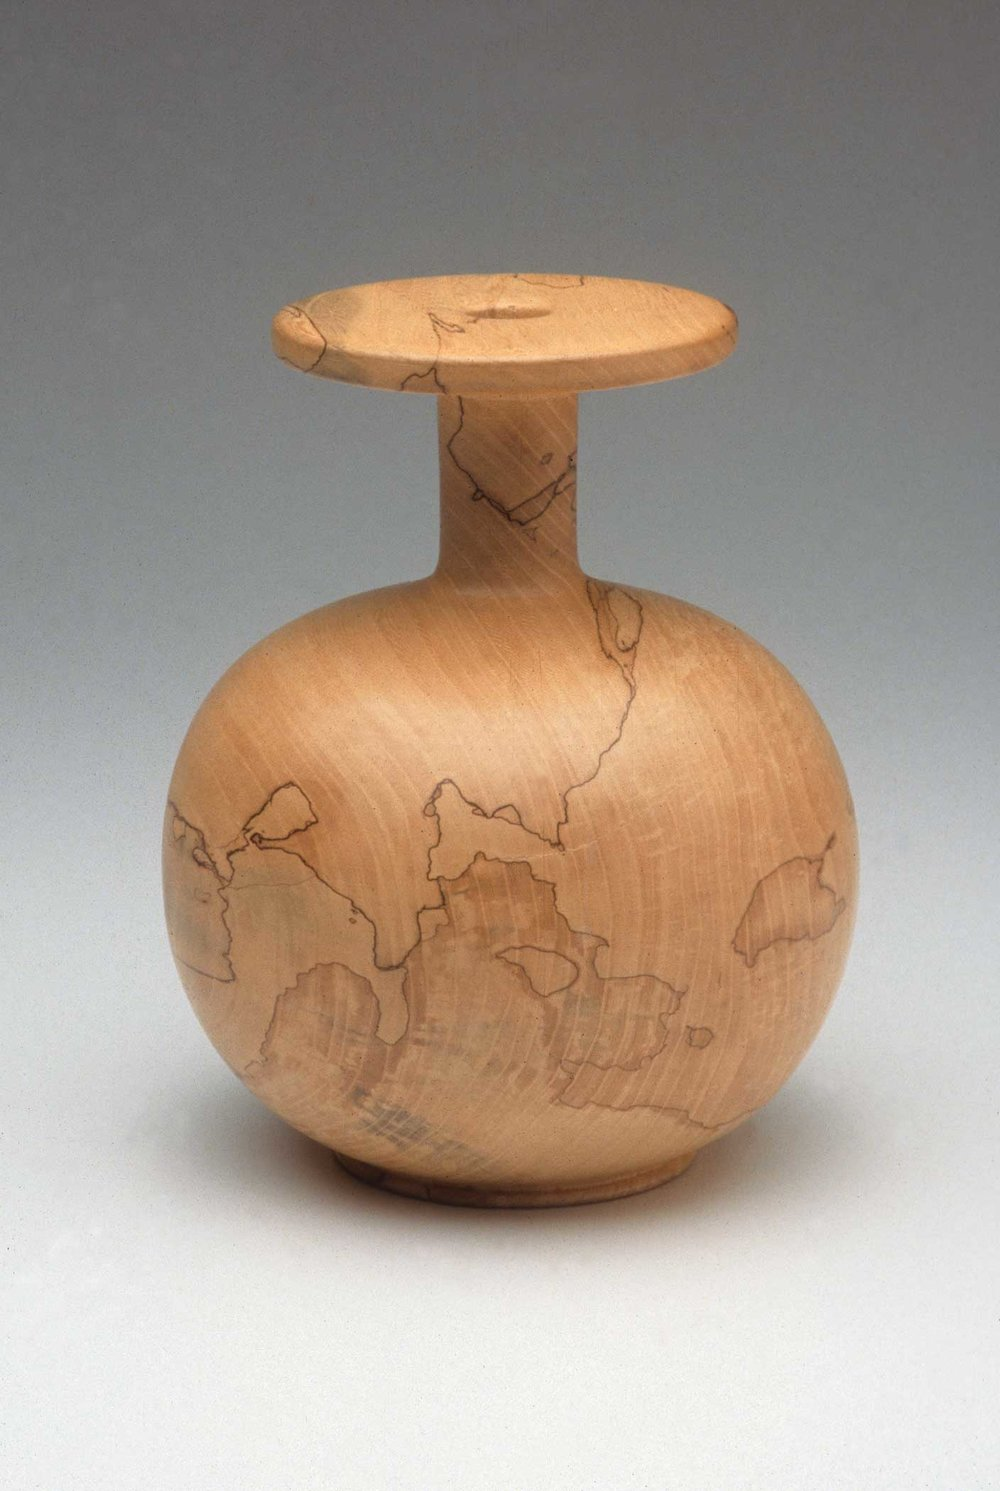 Fig. 20.  Melvin Lindquist, United States. Spalted Elm Vase, hollow, 1980– 01. Spalted elm. 8 x 6 ½ in. dia. Donated by Albert and Tina LeCoff. The Center for Art in Wood's Museum Collection. OBJ 19. Photo: John Carlano